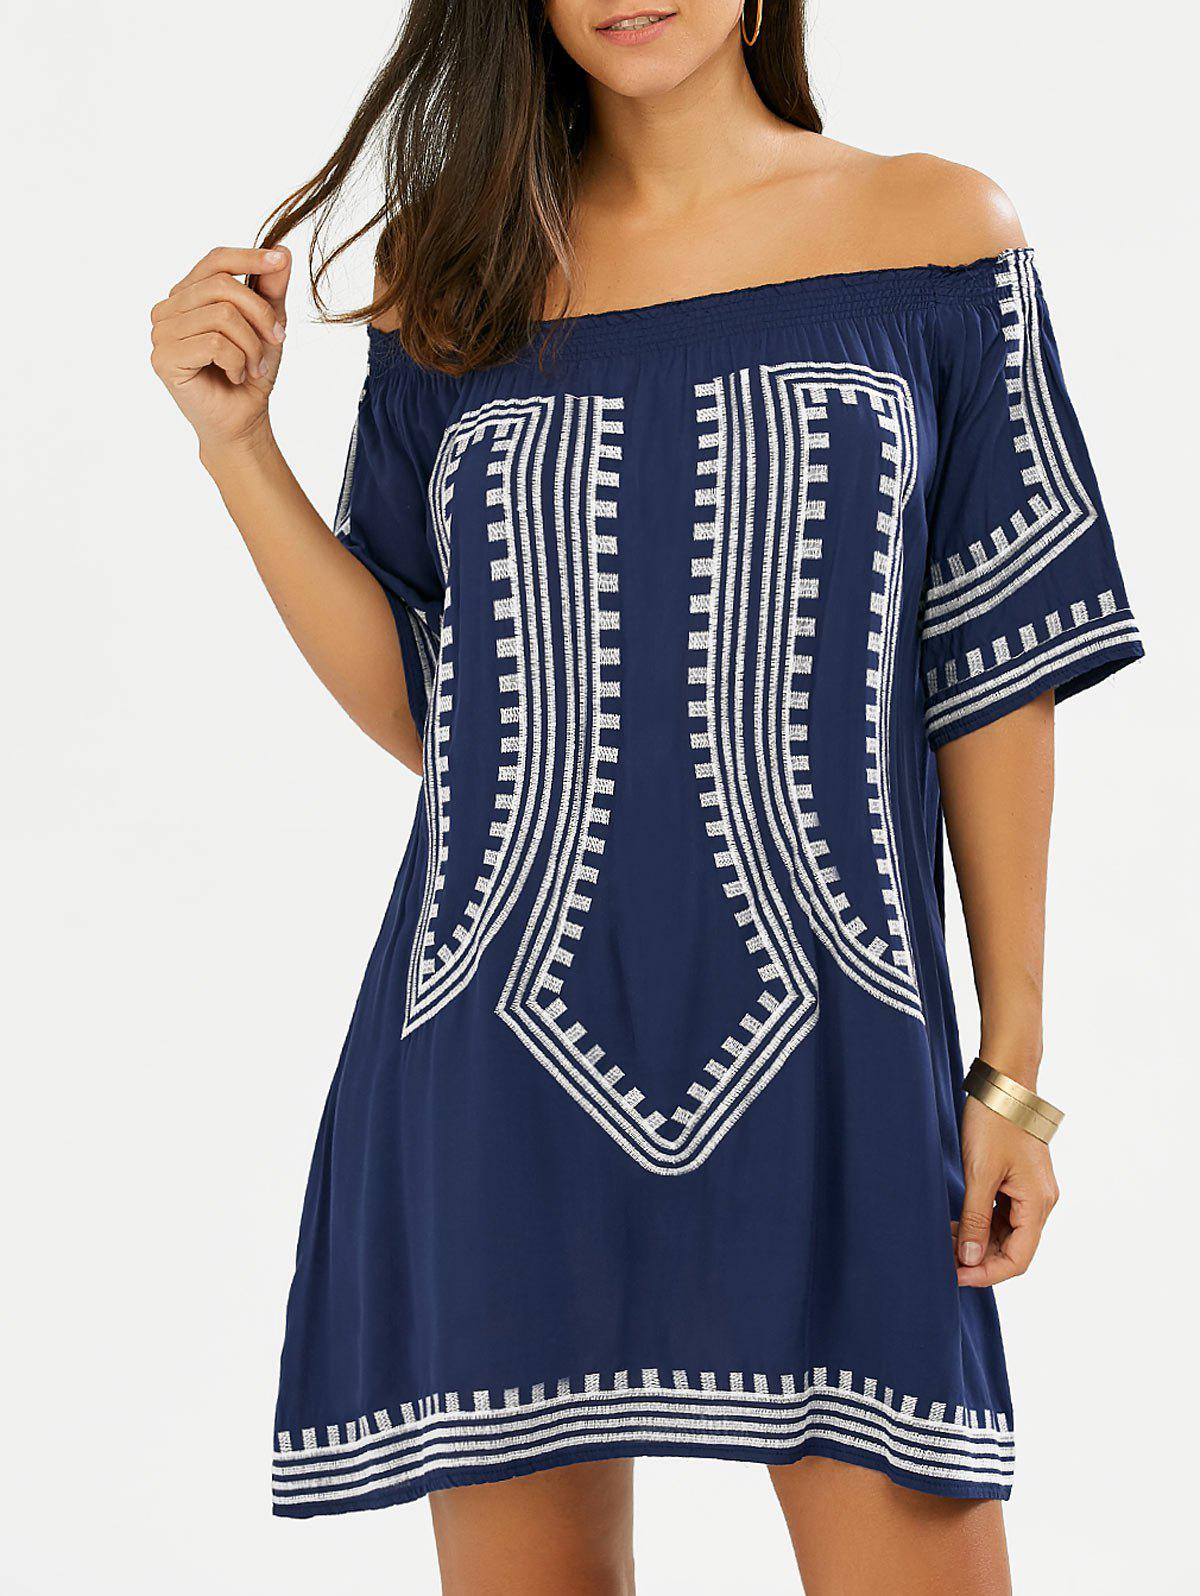 2018 Embroidered Off The Shoulder Summer Boho Shift Dress